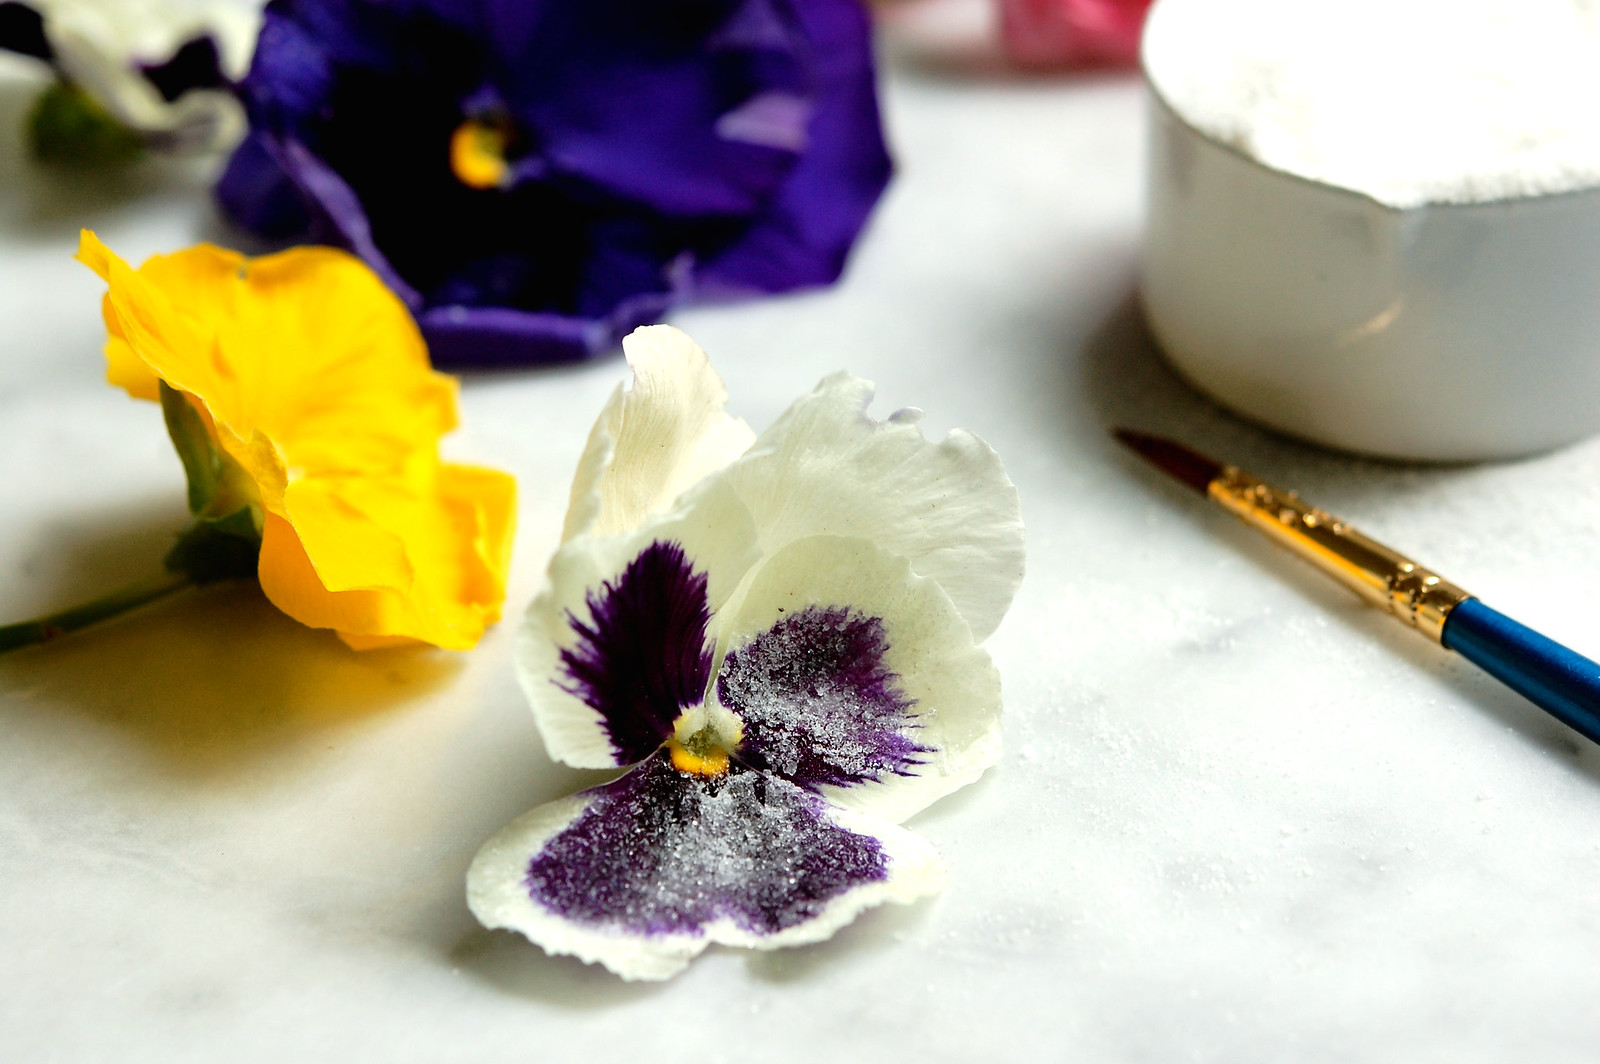 candied crystallized pansies with paintbrush